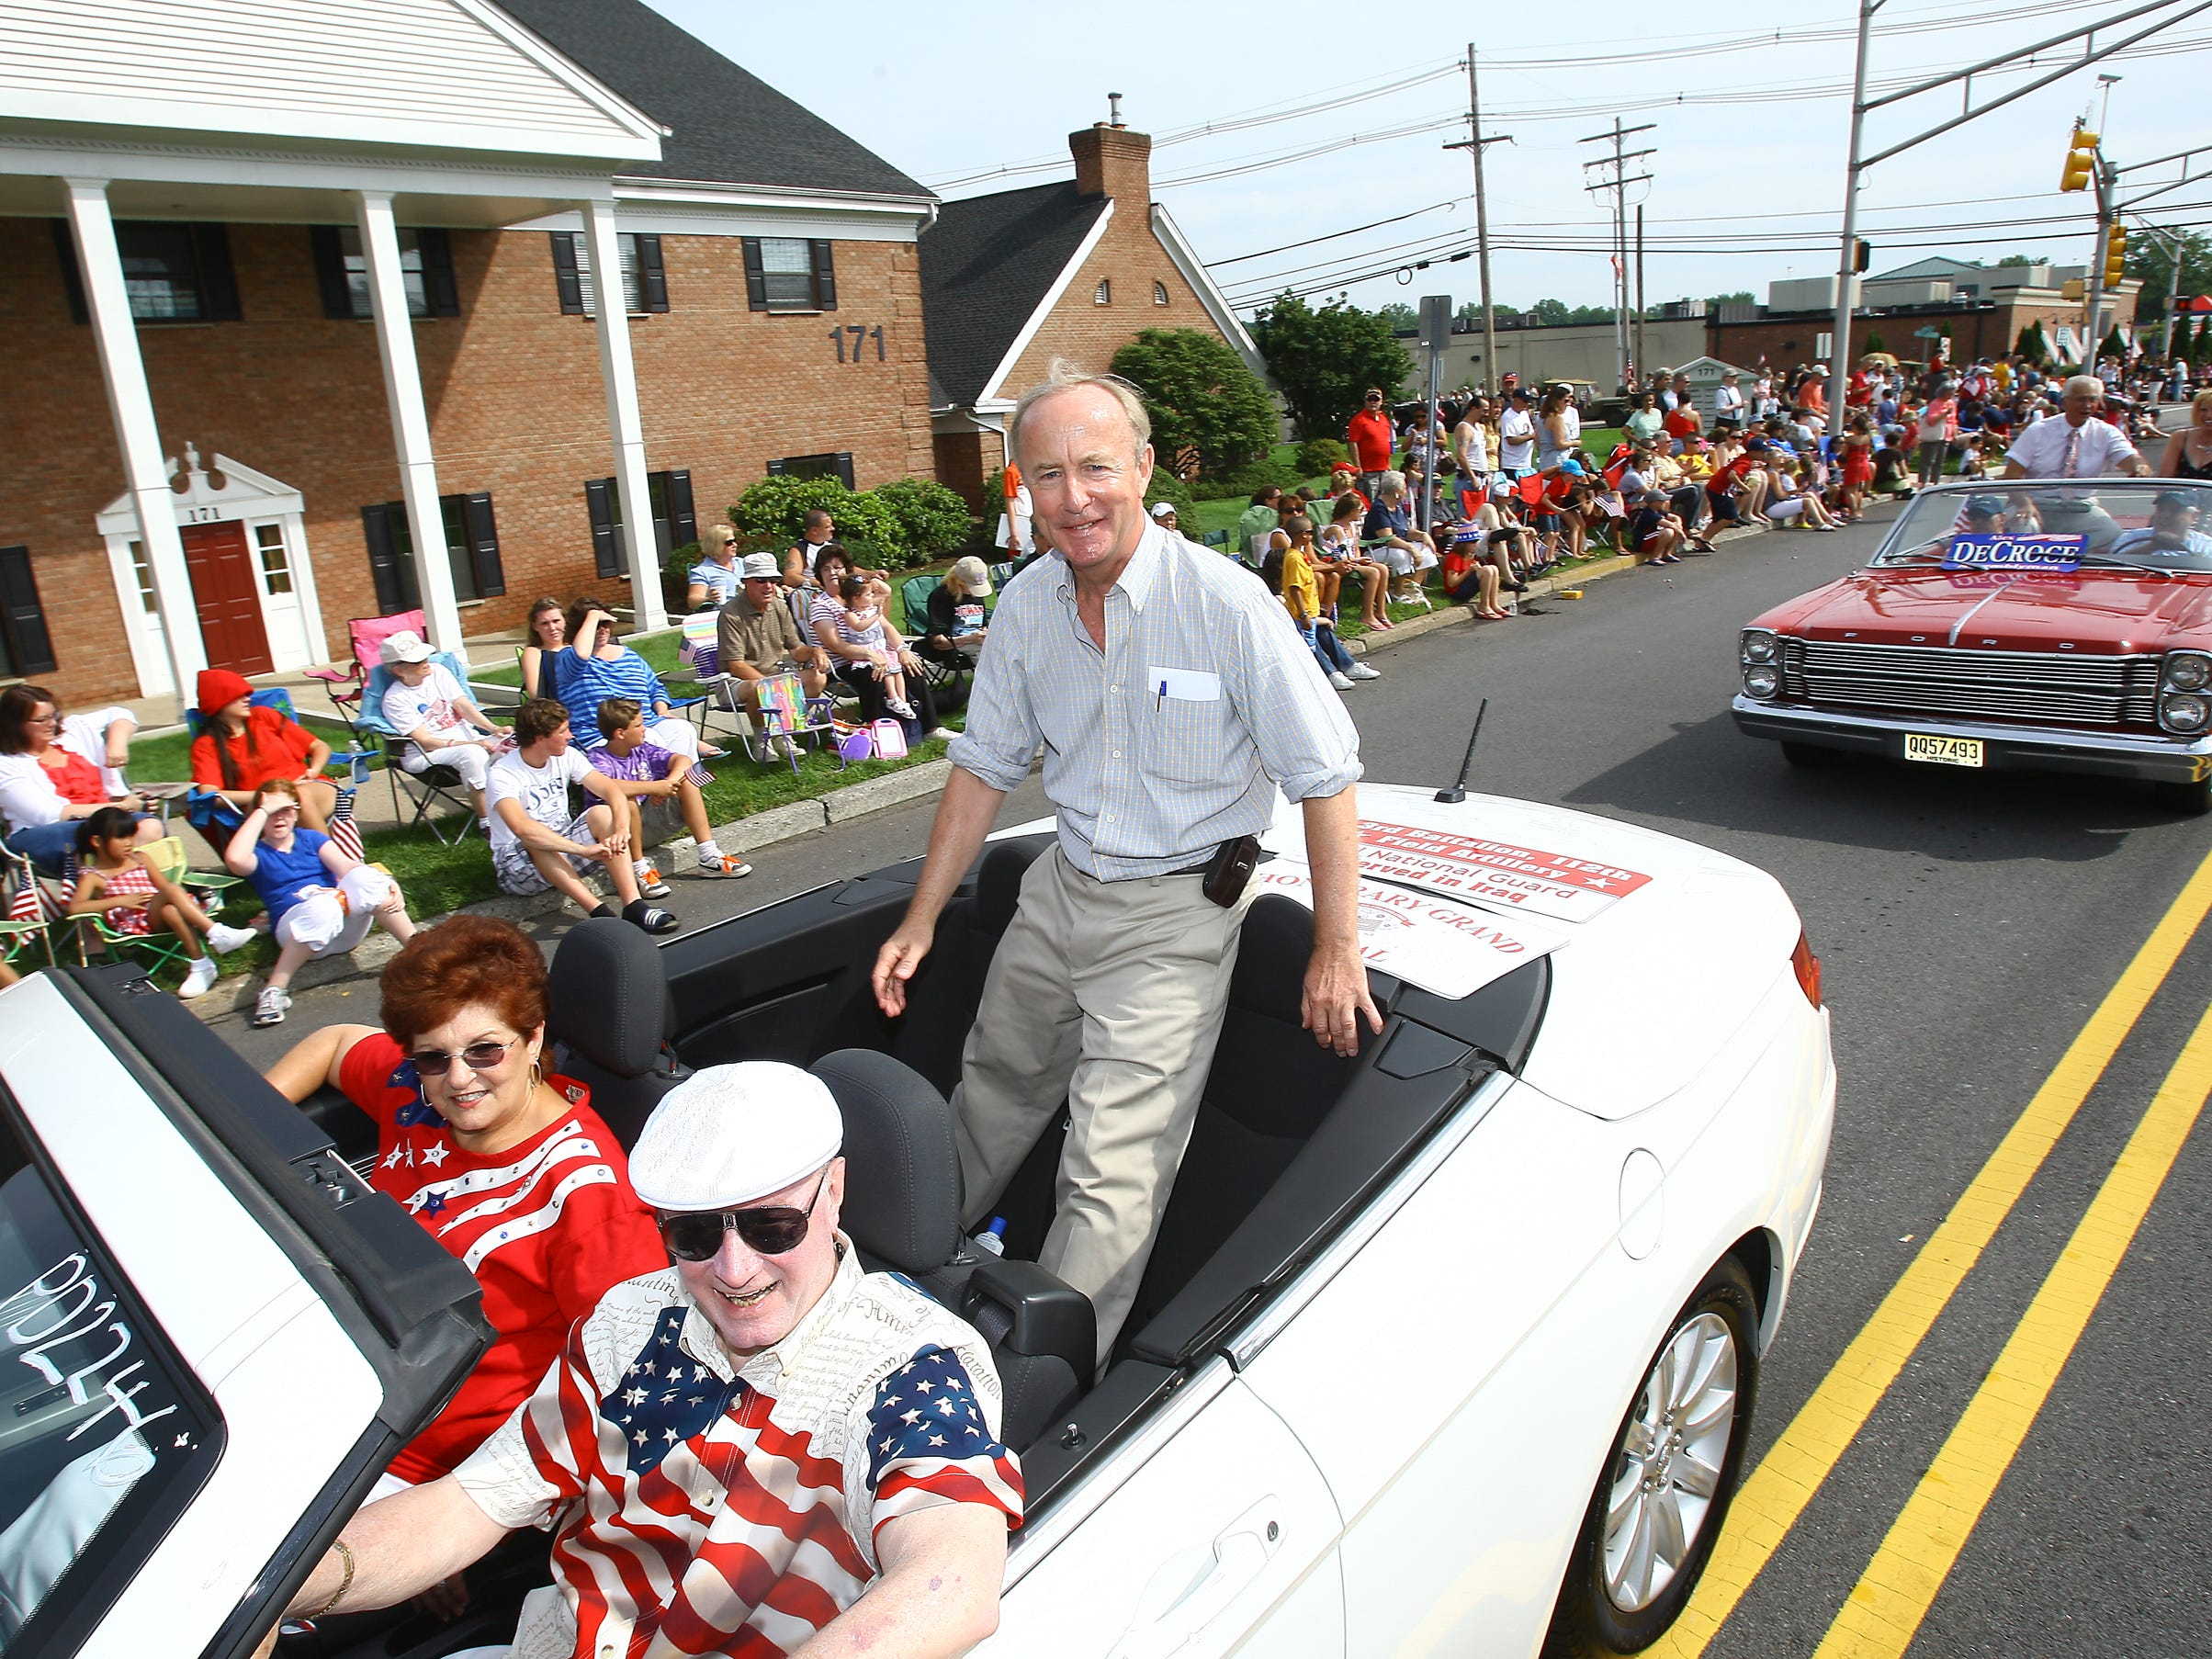 Florham Park, July 4, 2011--Congressman Rodney Frelinghuysen waves to the crowd at the  54th Annual Florham Park July 4th Celebration.